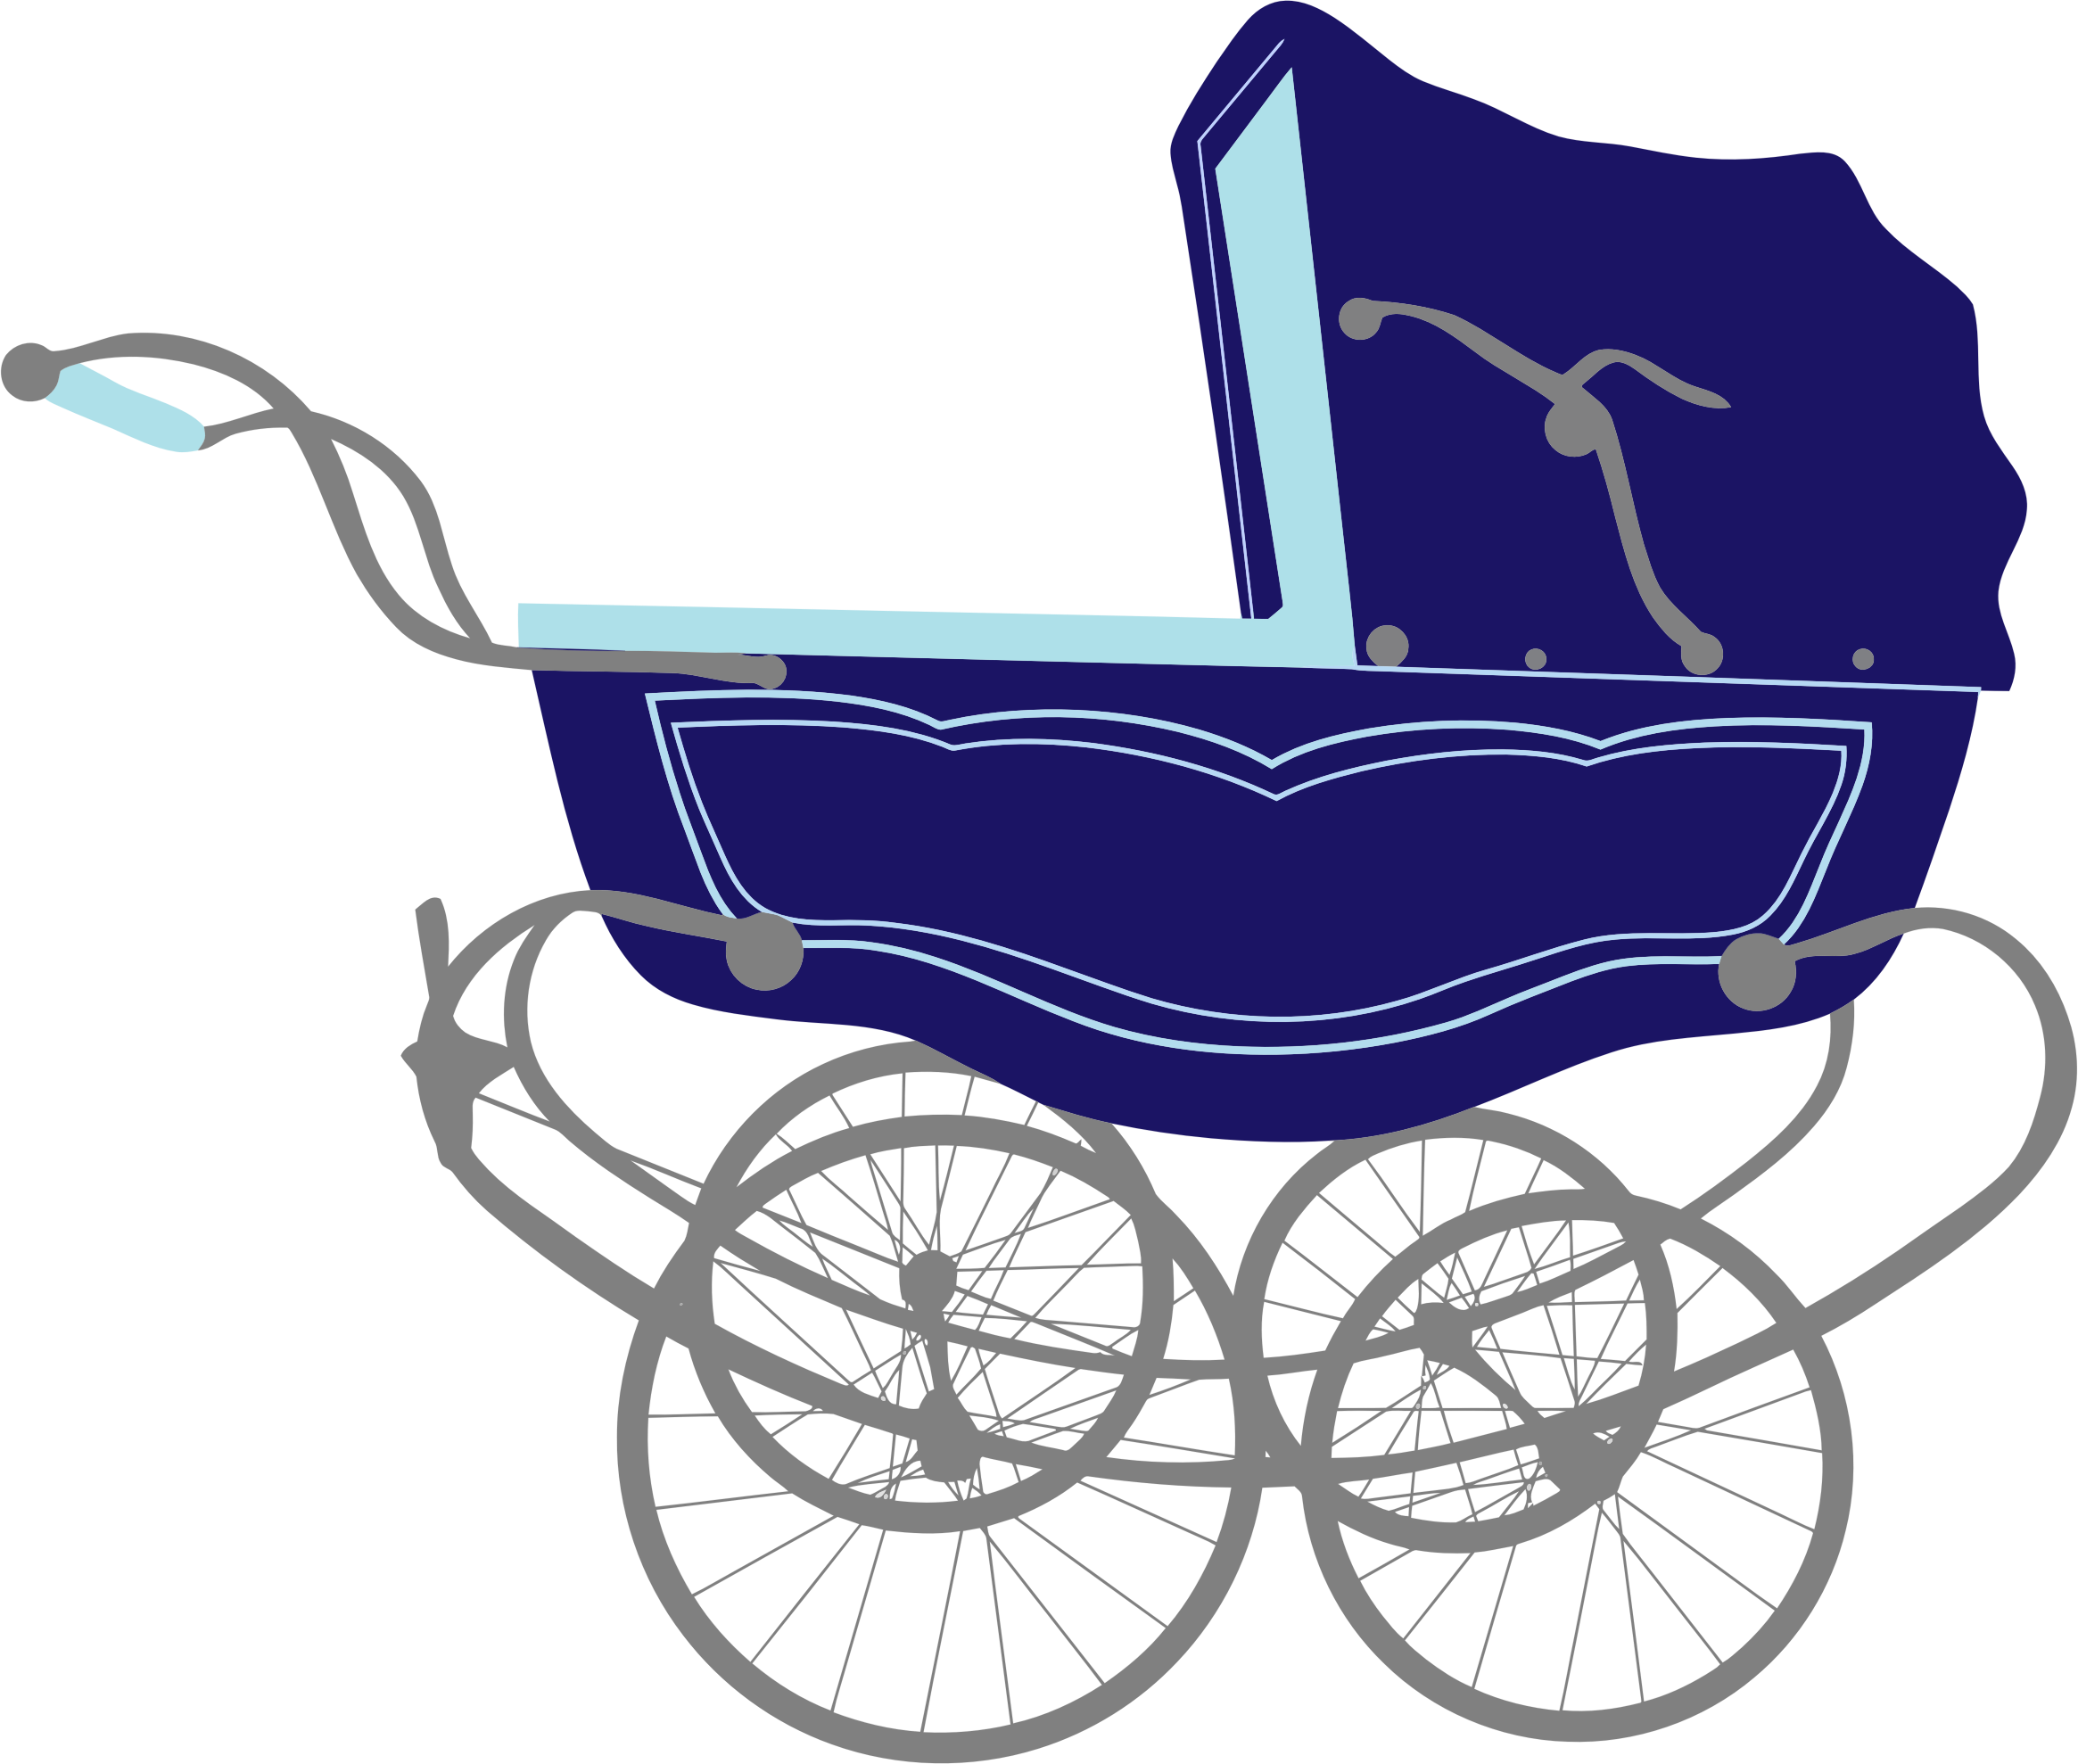 Baby carriage png. Vintage blue stroller icons